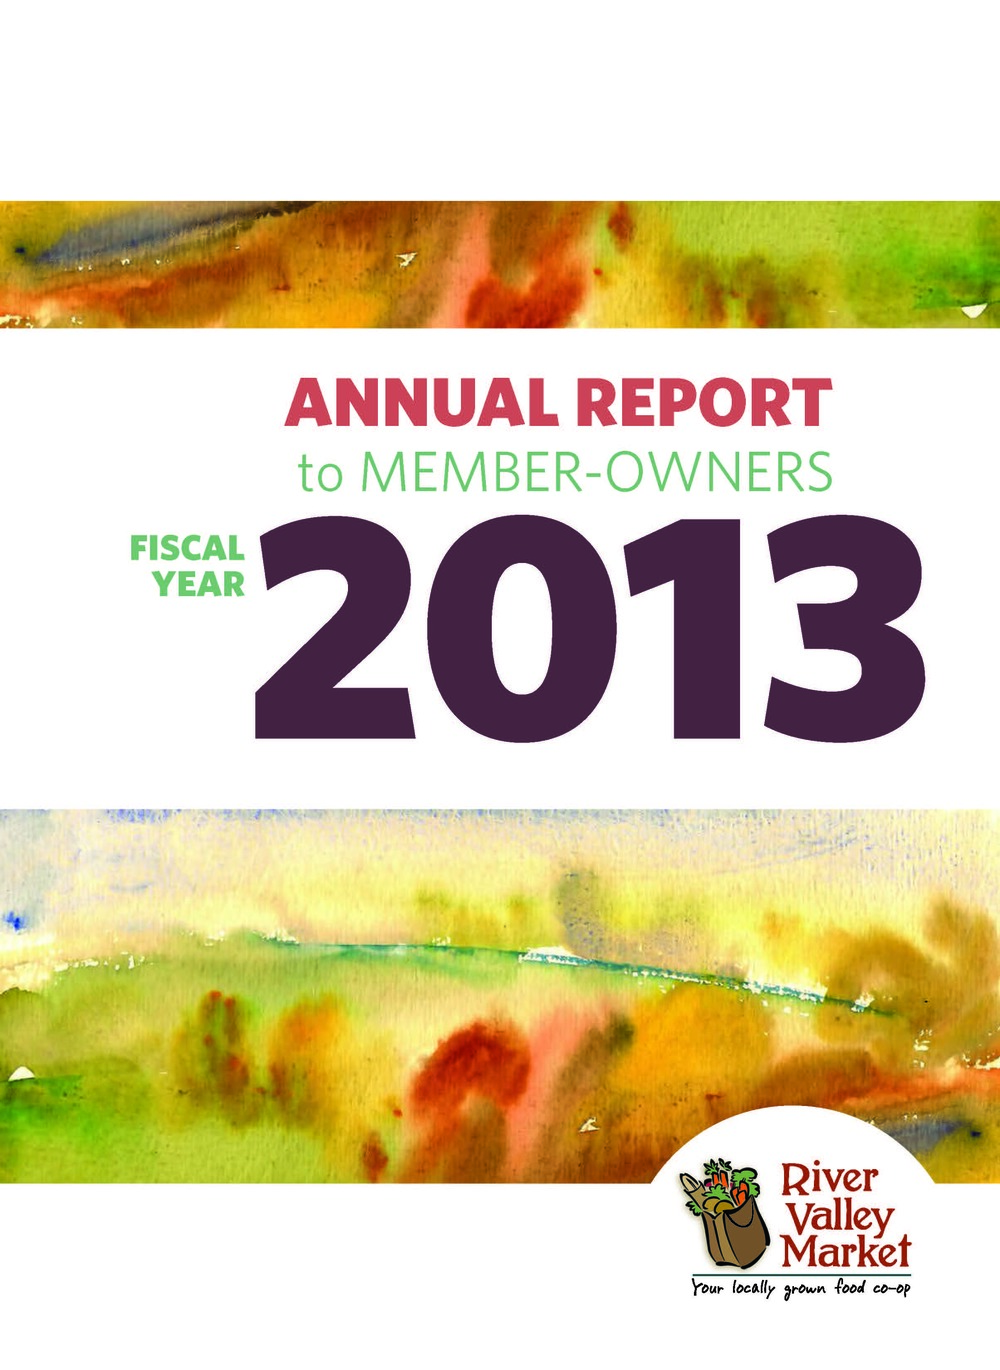 River Valley Market Annual Report 2013